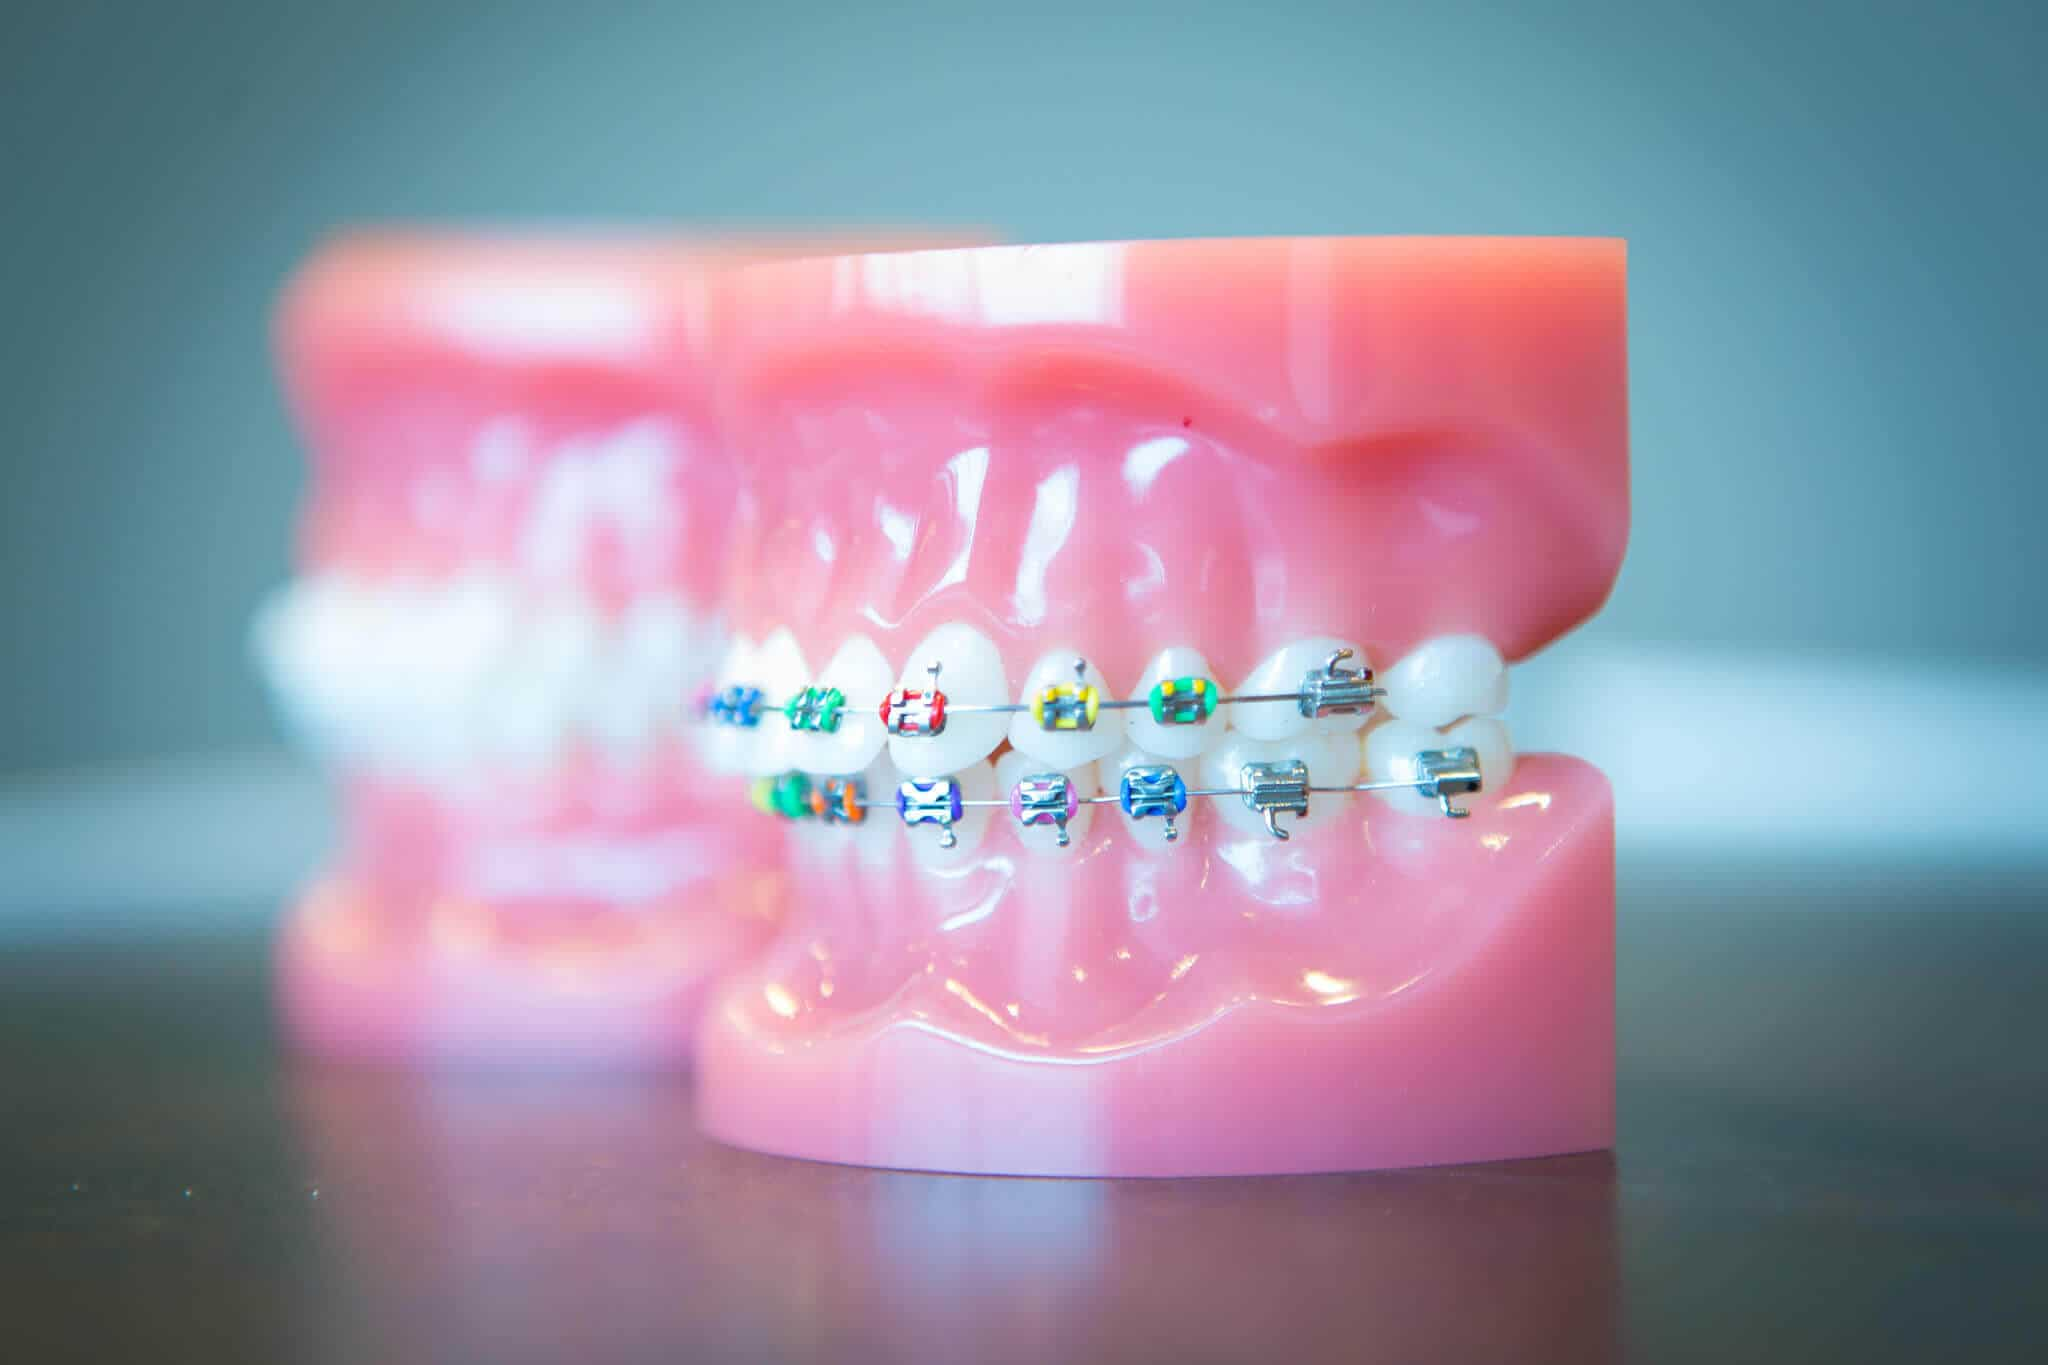 orthodontist Dr larson is an expert in orthodontics in moore, ok she provides braces and invisalign services in moore, shawnee, oklahoma city, and norman.